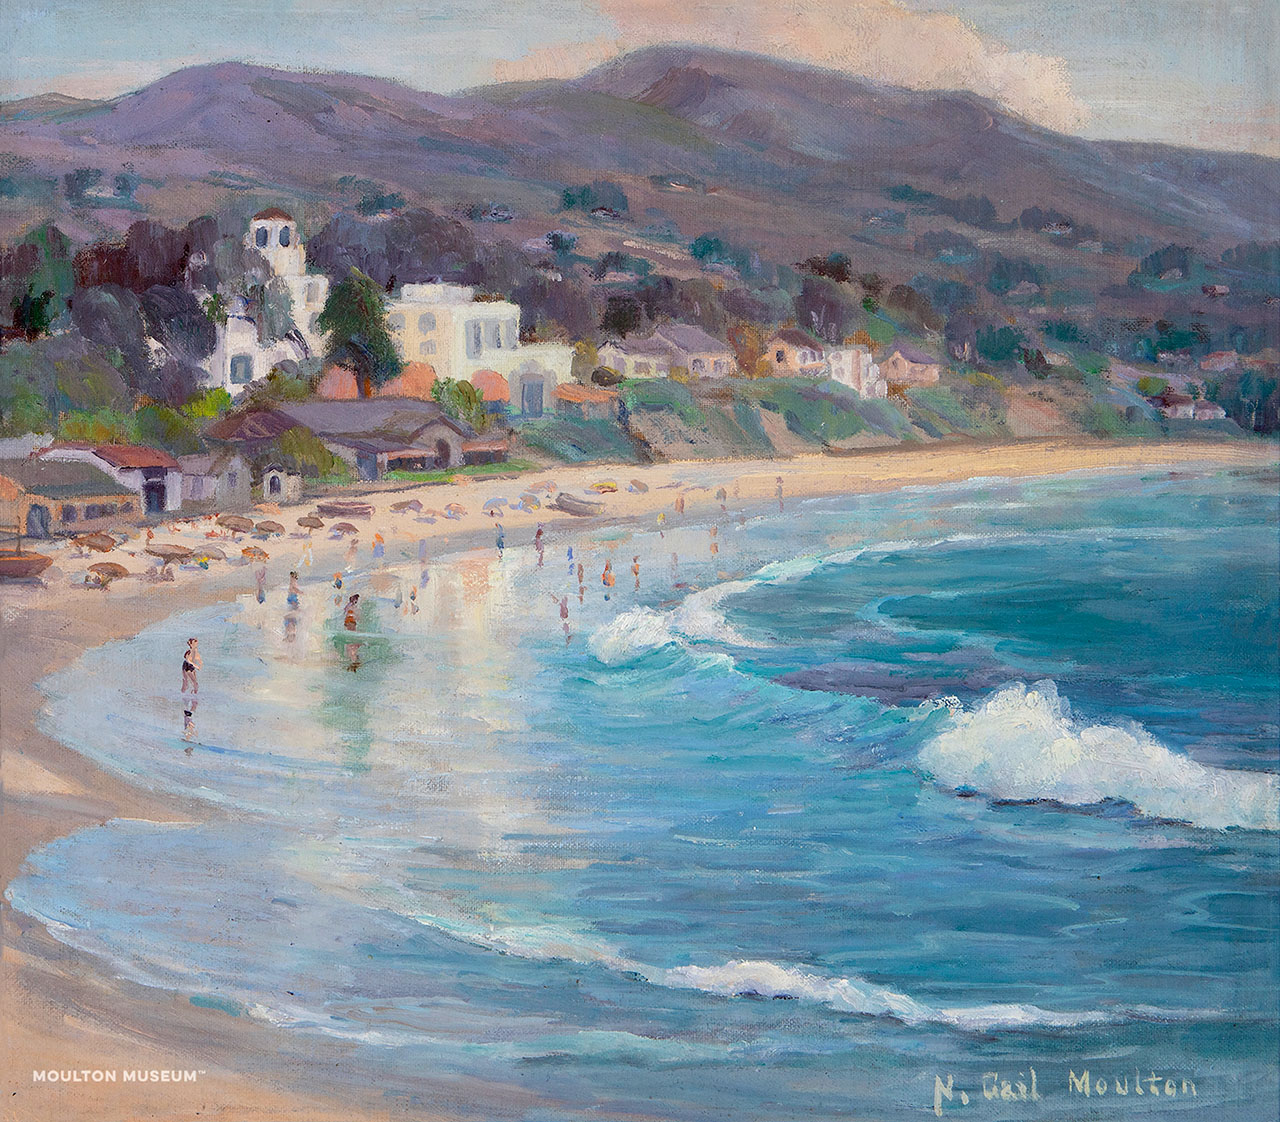 Casa Romantica Display Honoring Nellie Gail Moulton's Legacy Opens This Month